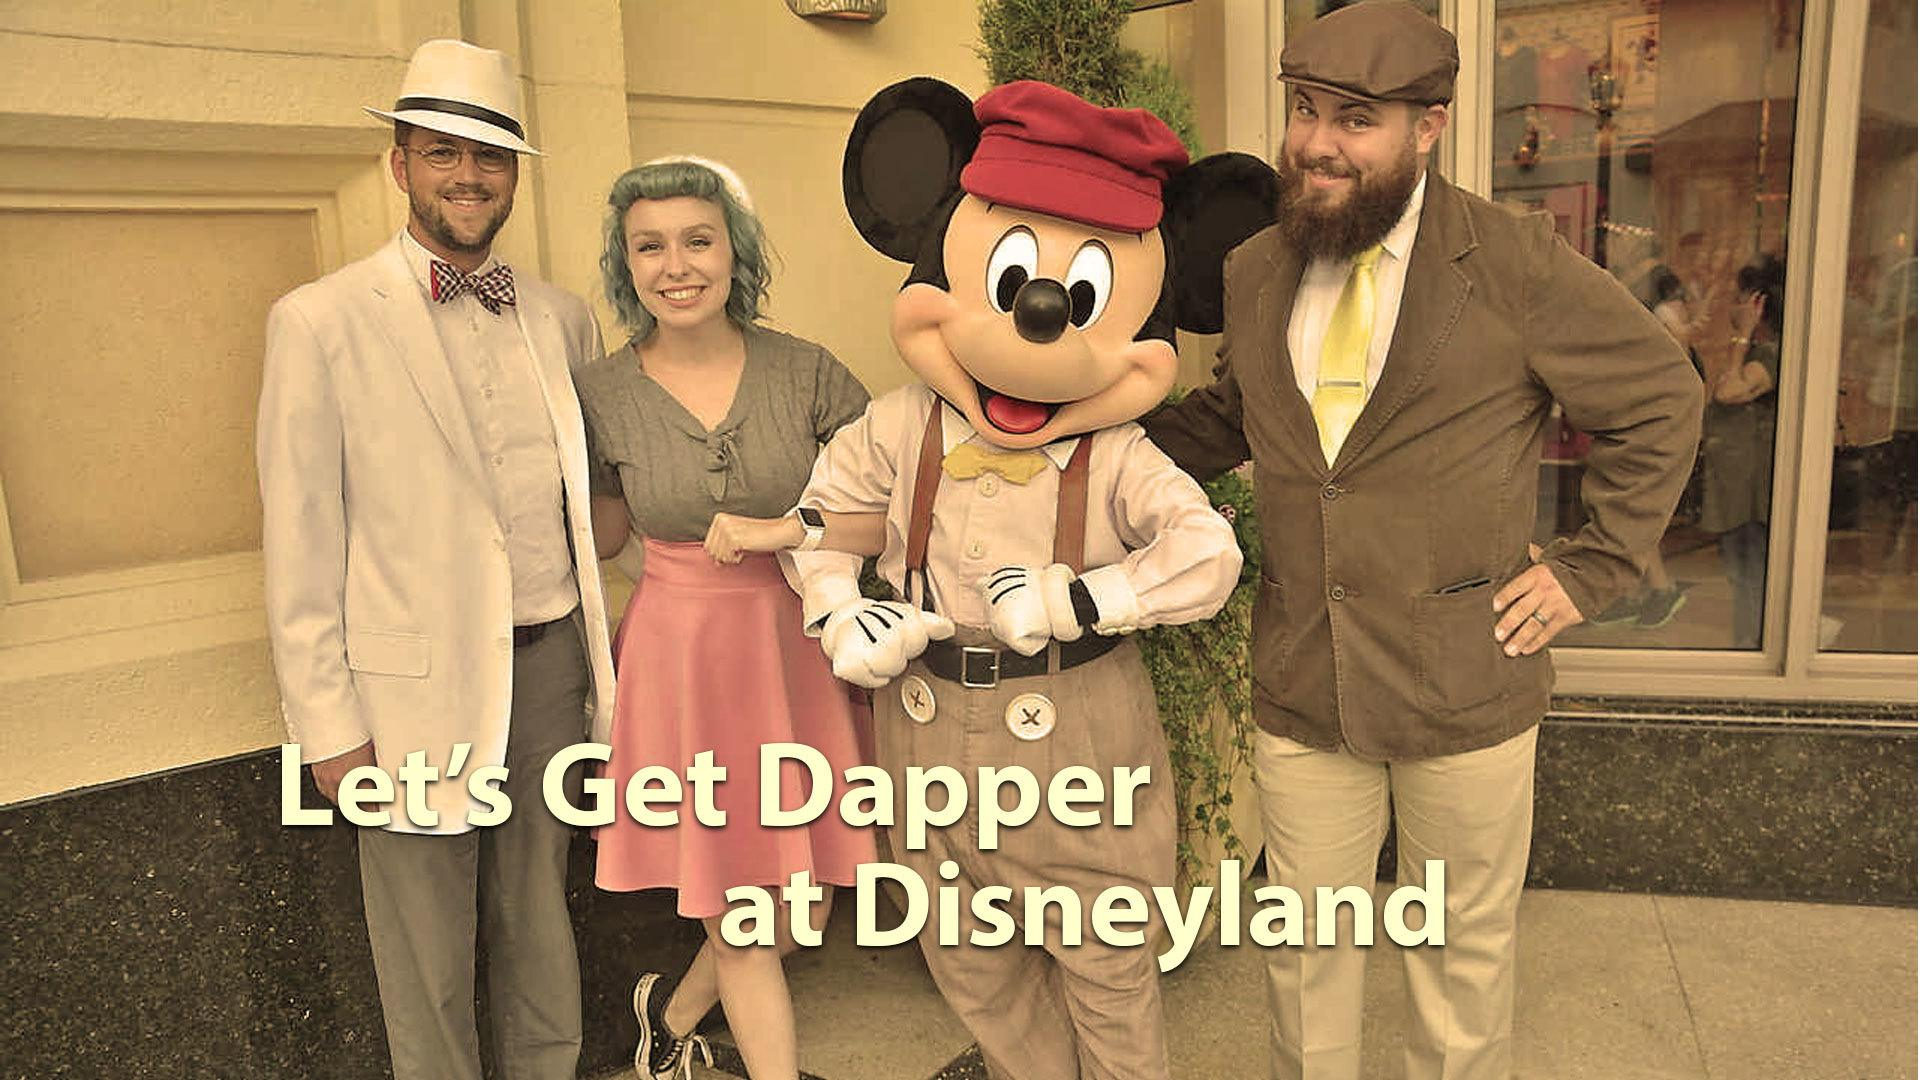 Let's Get Dapper at Disneyland